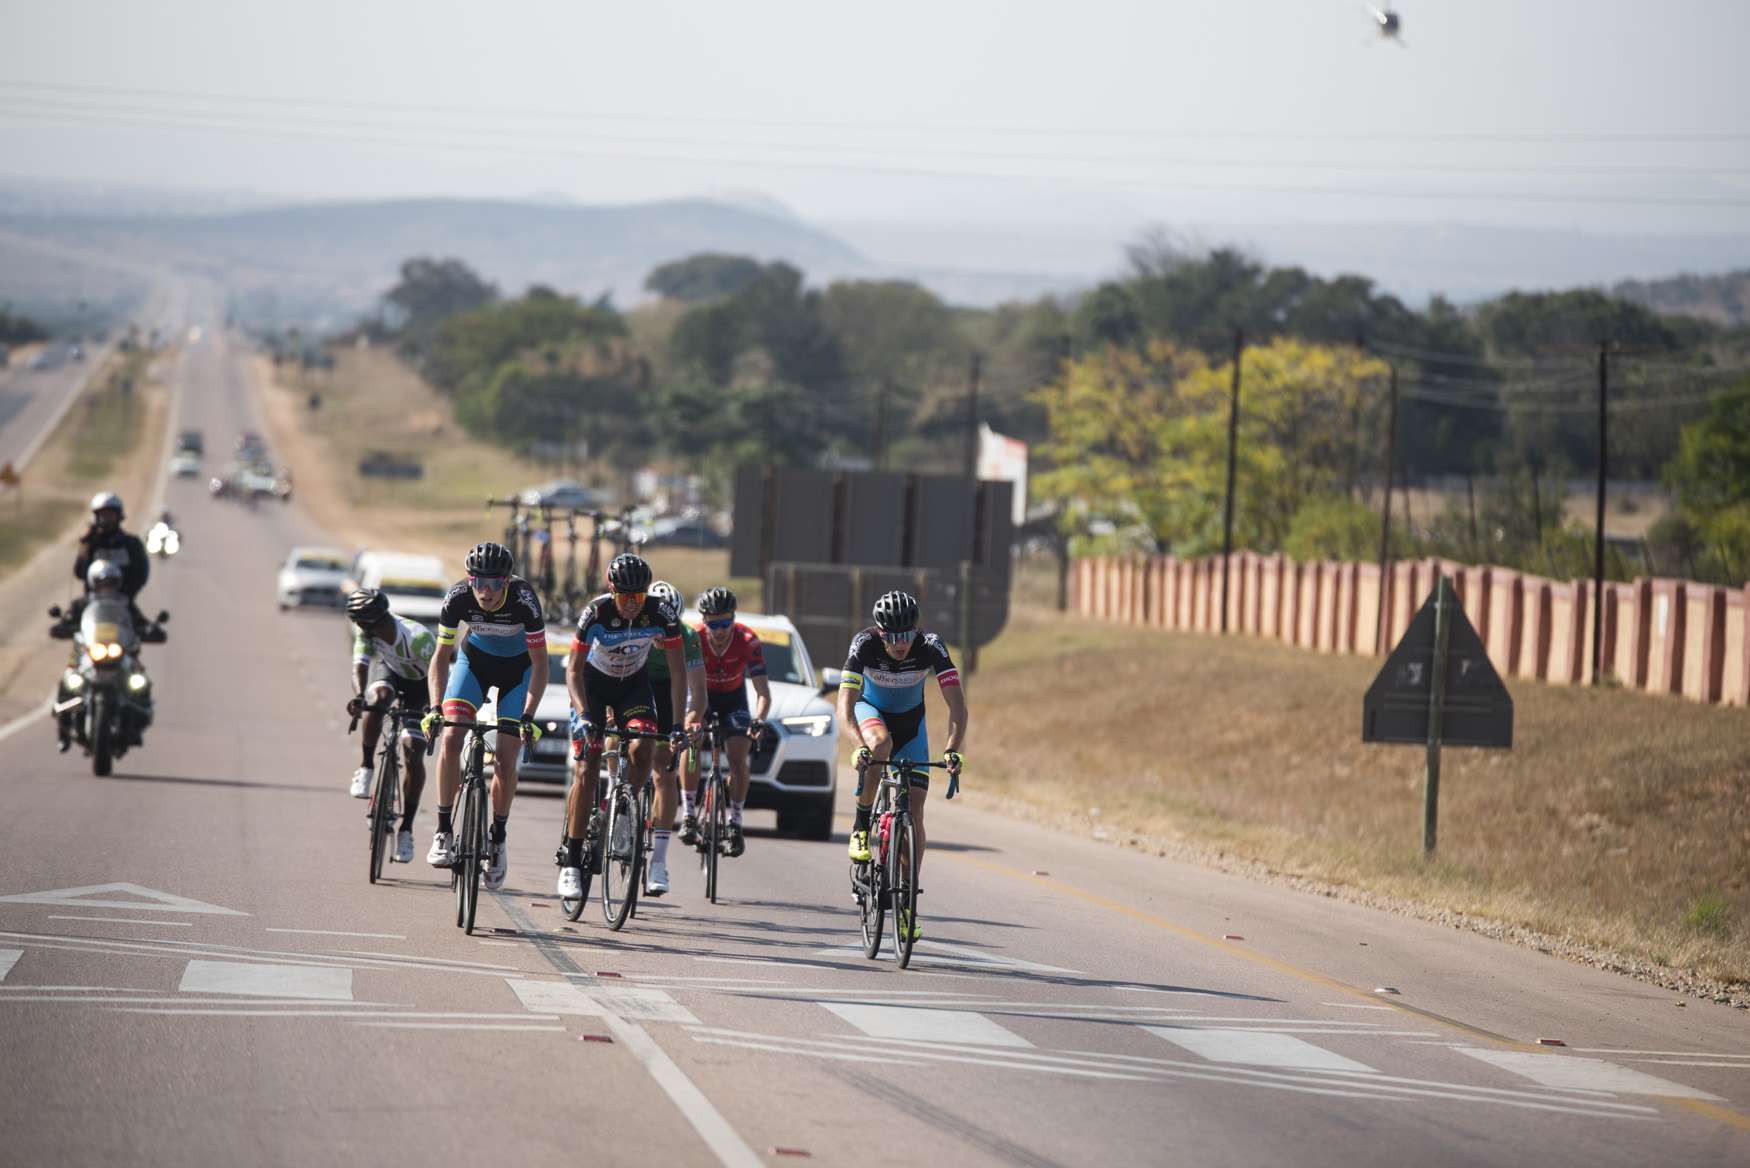 The breakaway, which would contain the lead six who claimed the top six positions of the stage, were Dylan Girdlestone and Alexander Worsdale (Officeguru Racing), Clint Hendricks (ProTouch Continental), Jason Oosthuizen (TEG Continental), Hendrik Kruger (Alfa Bodyworks Giant) and Casper Kruger (ACDC Luso)  from Tzaneen to Peter Mokaba Stadium, Polokwane, on Stage 4 of the 2019 Tour de Limpopo (UCI 2.2) from 14-18 May © Tour de Limpopo/Andrew Mc Fadden